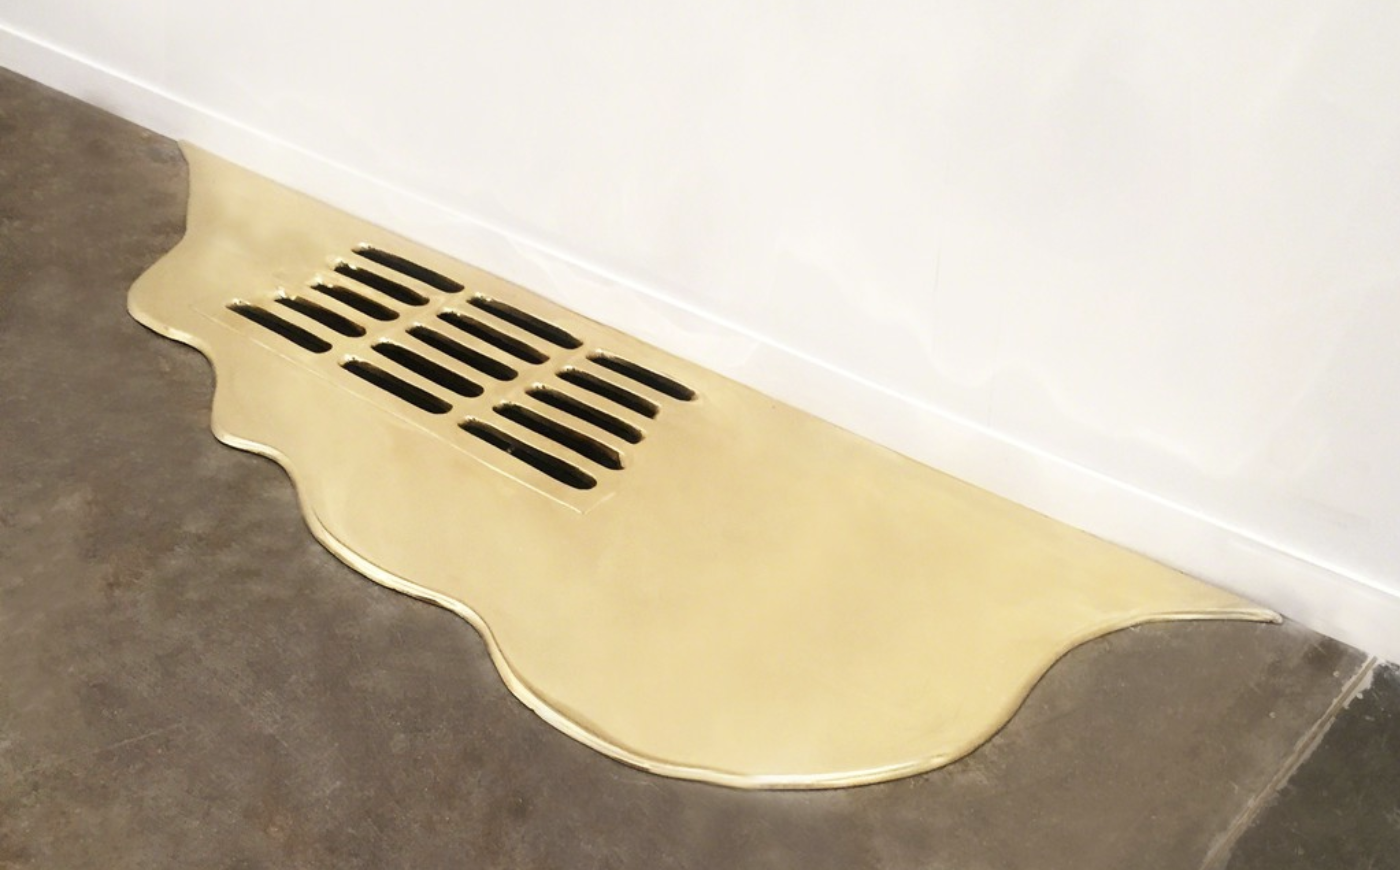 Liquid Gold Drains Are The Coolest Home Accessory Out There—No Exaggeration